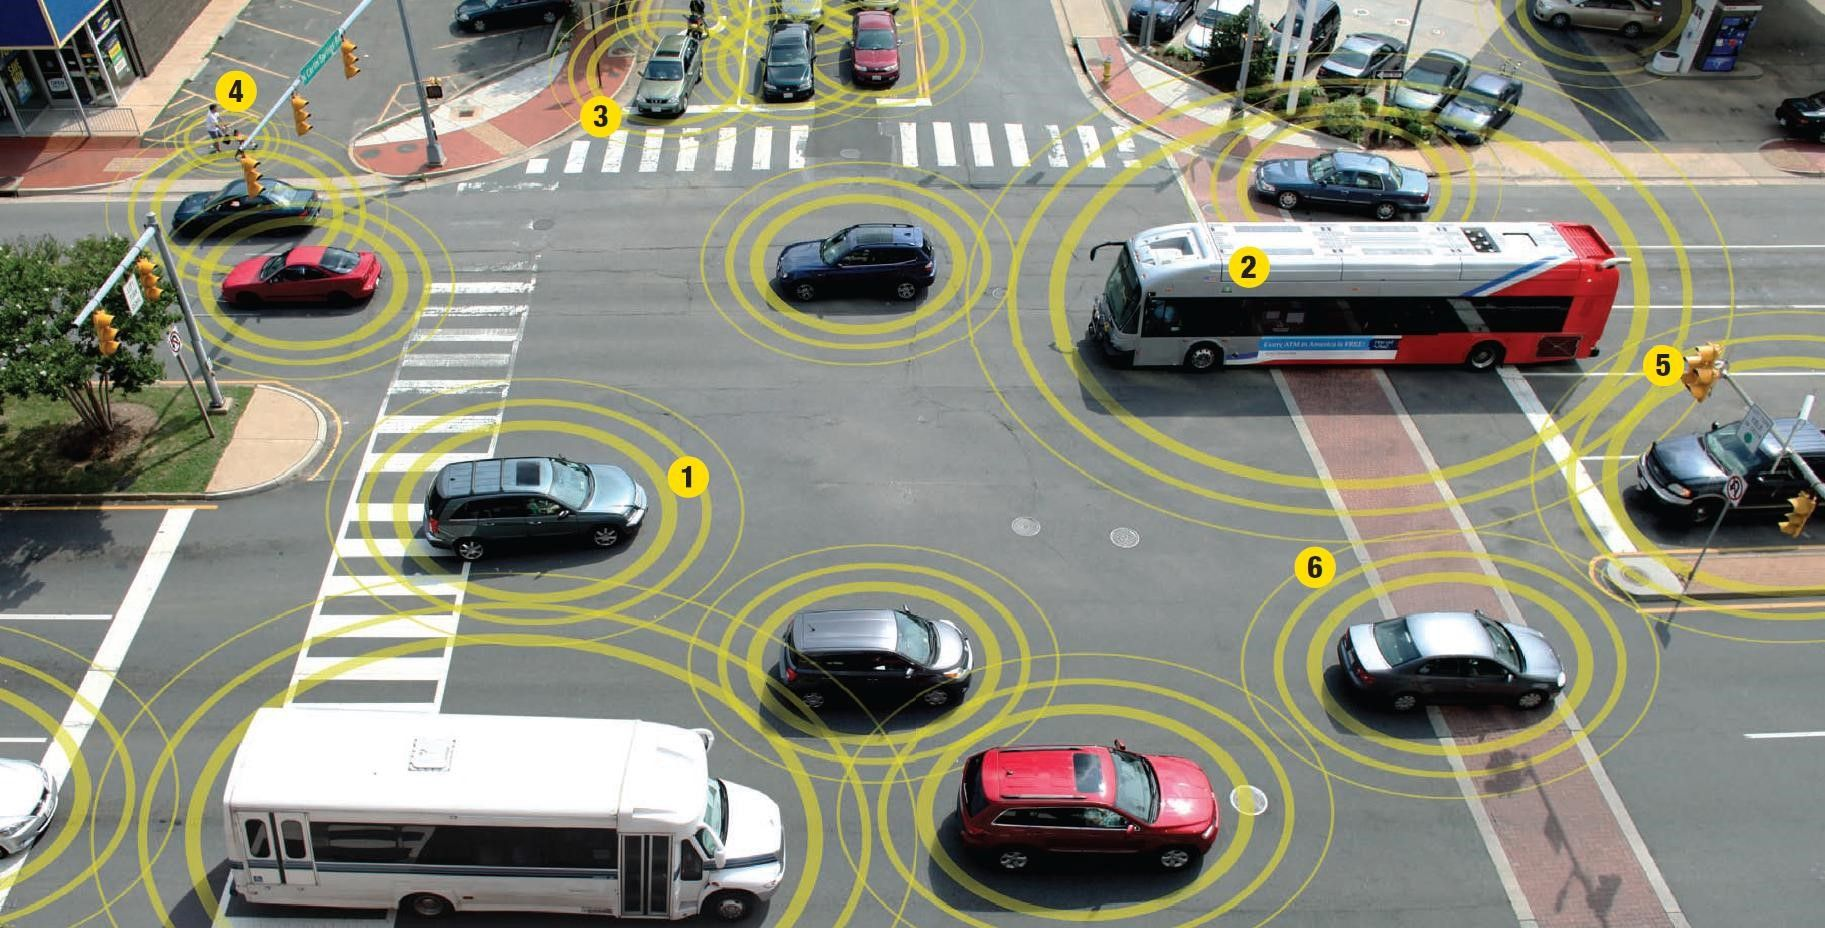 Global Smart Transportation Market is Envisioned to Mark a